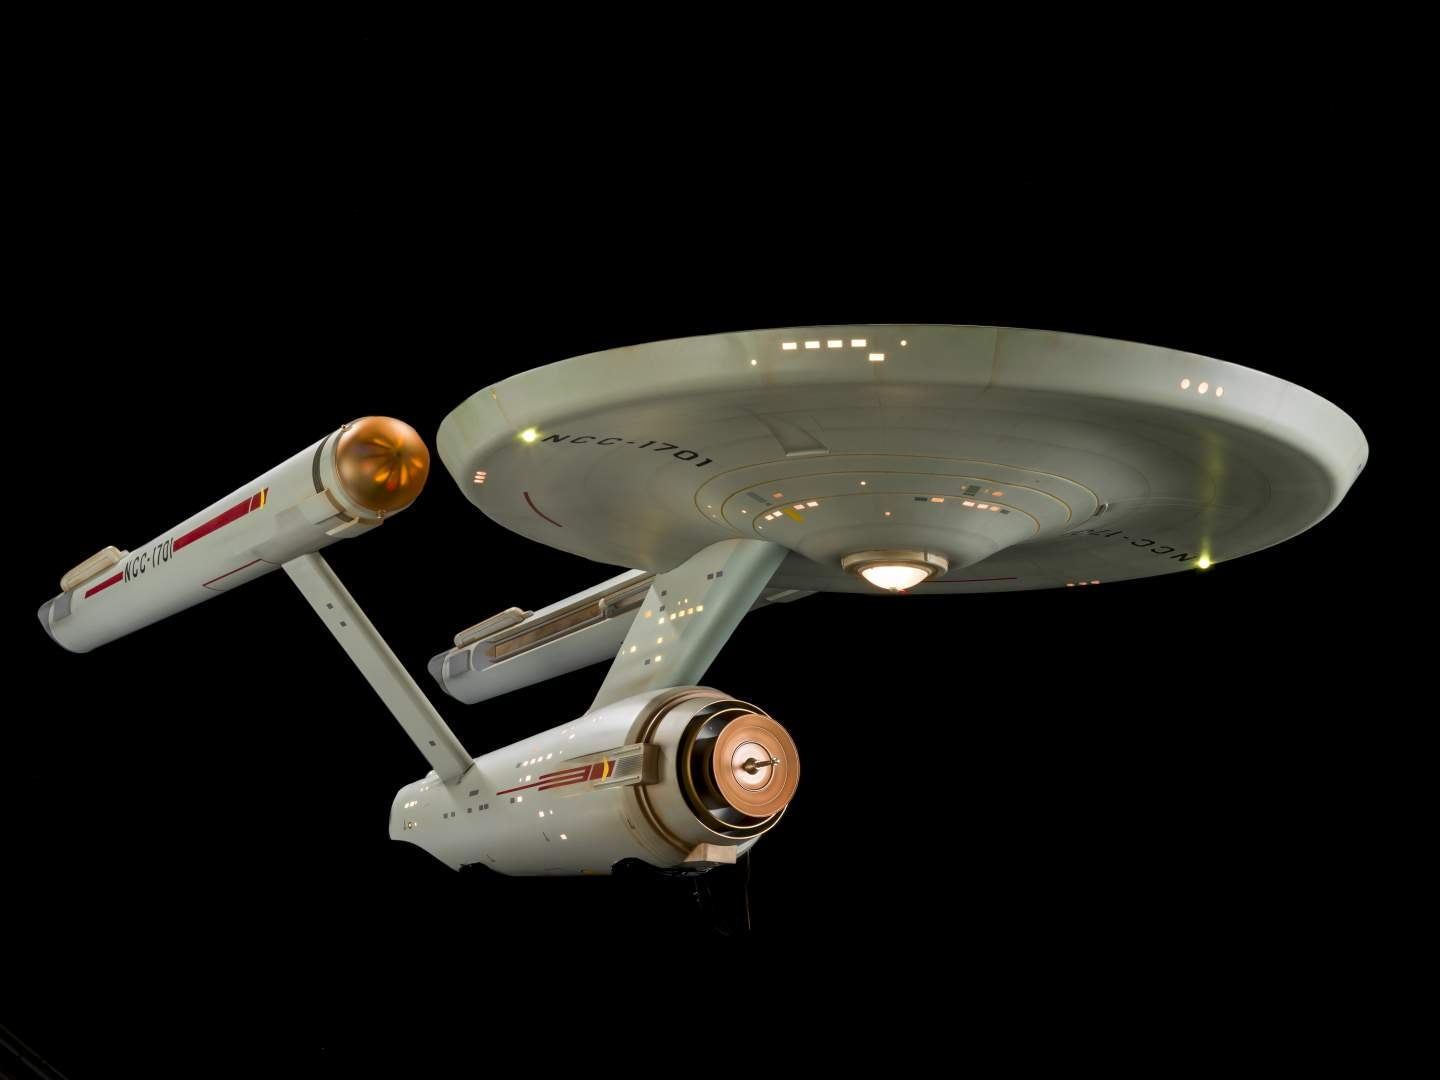 The Enterprise Model Is Leaving the Smithsonian